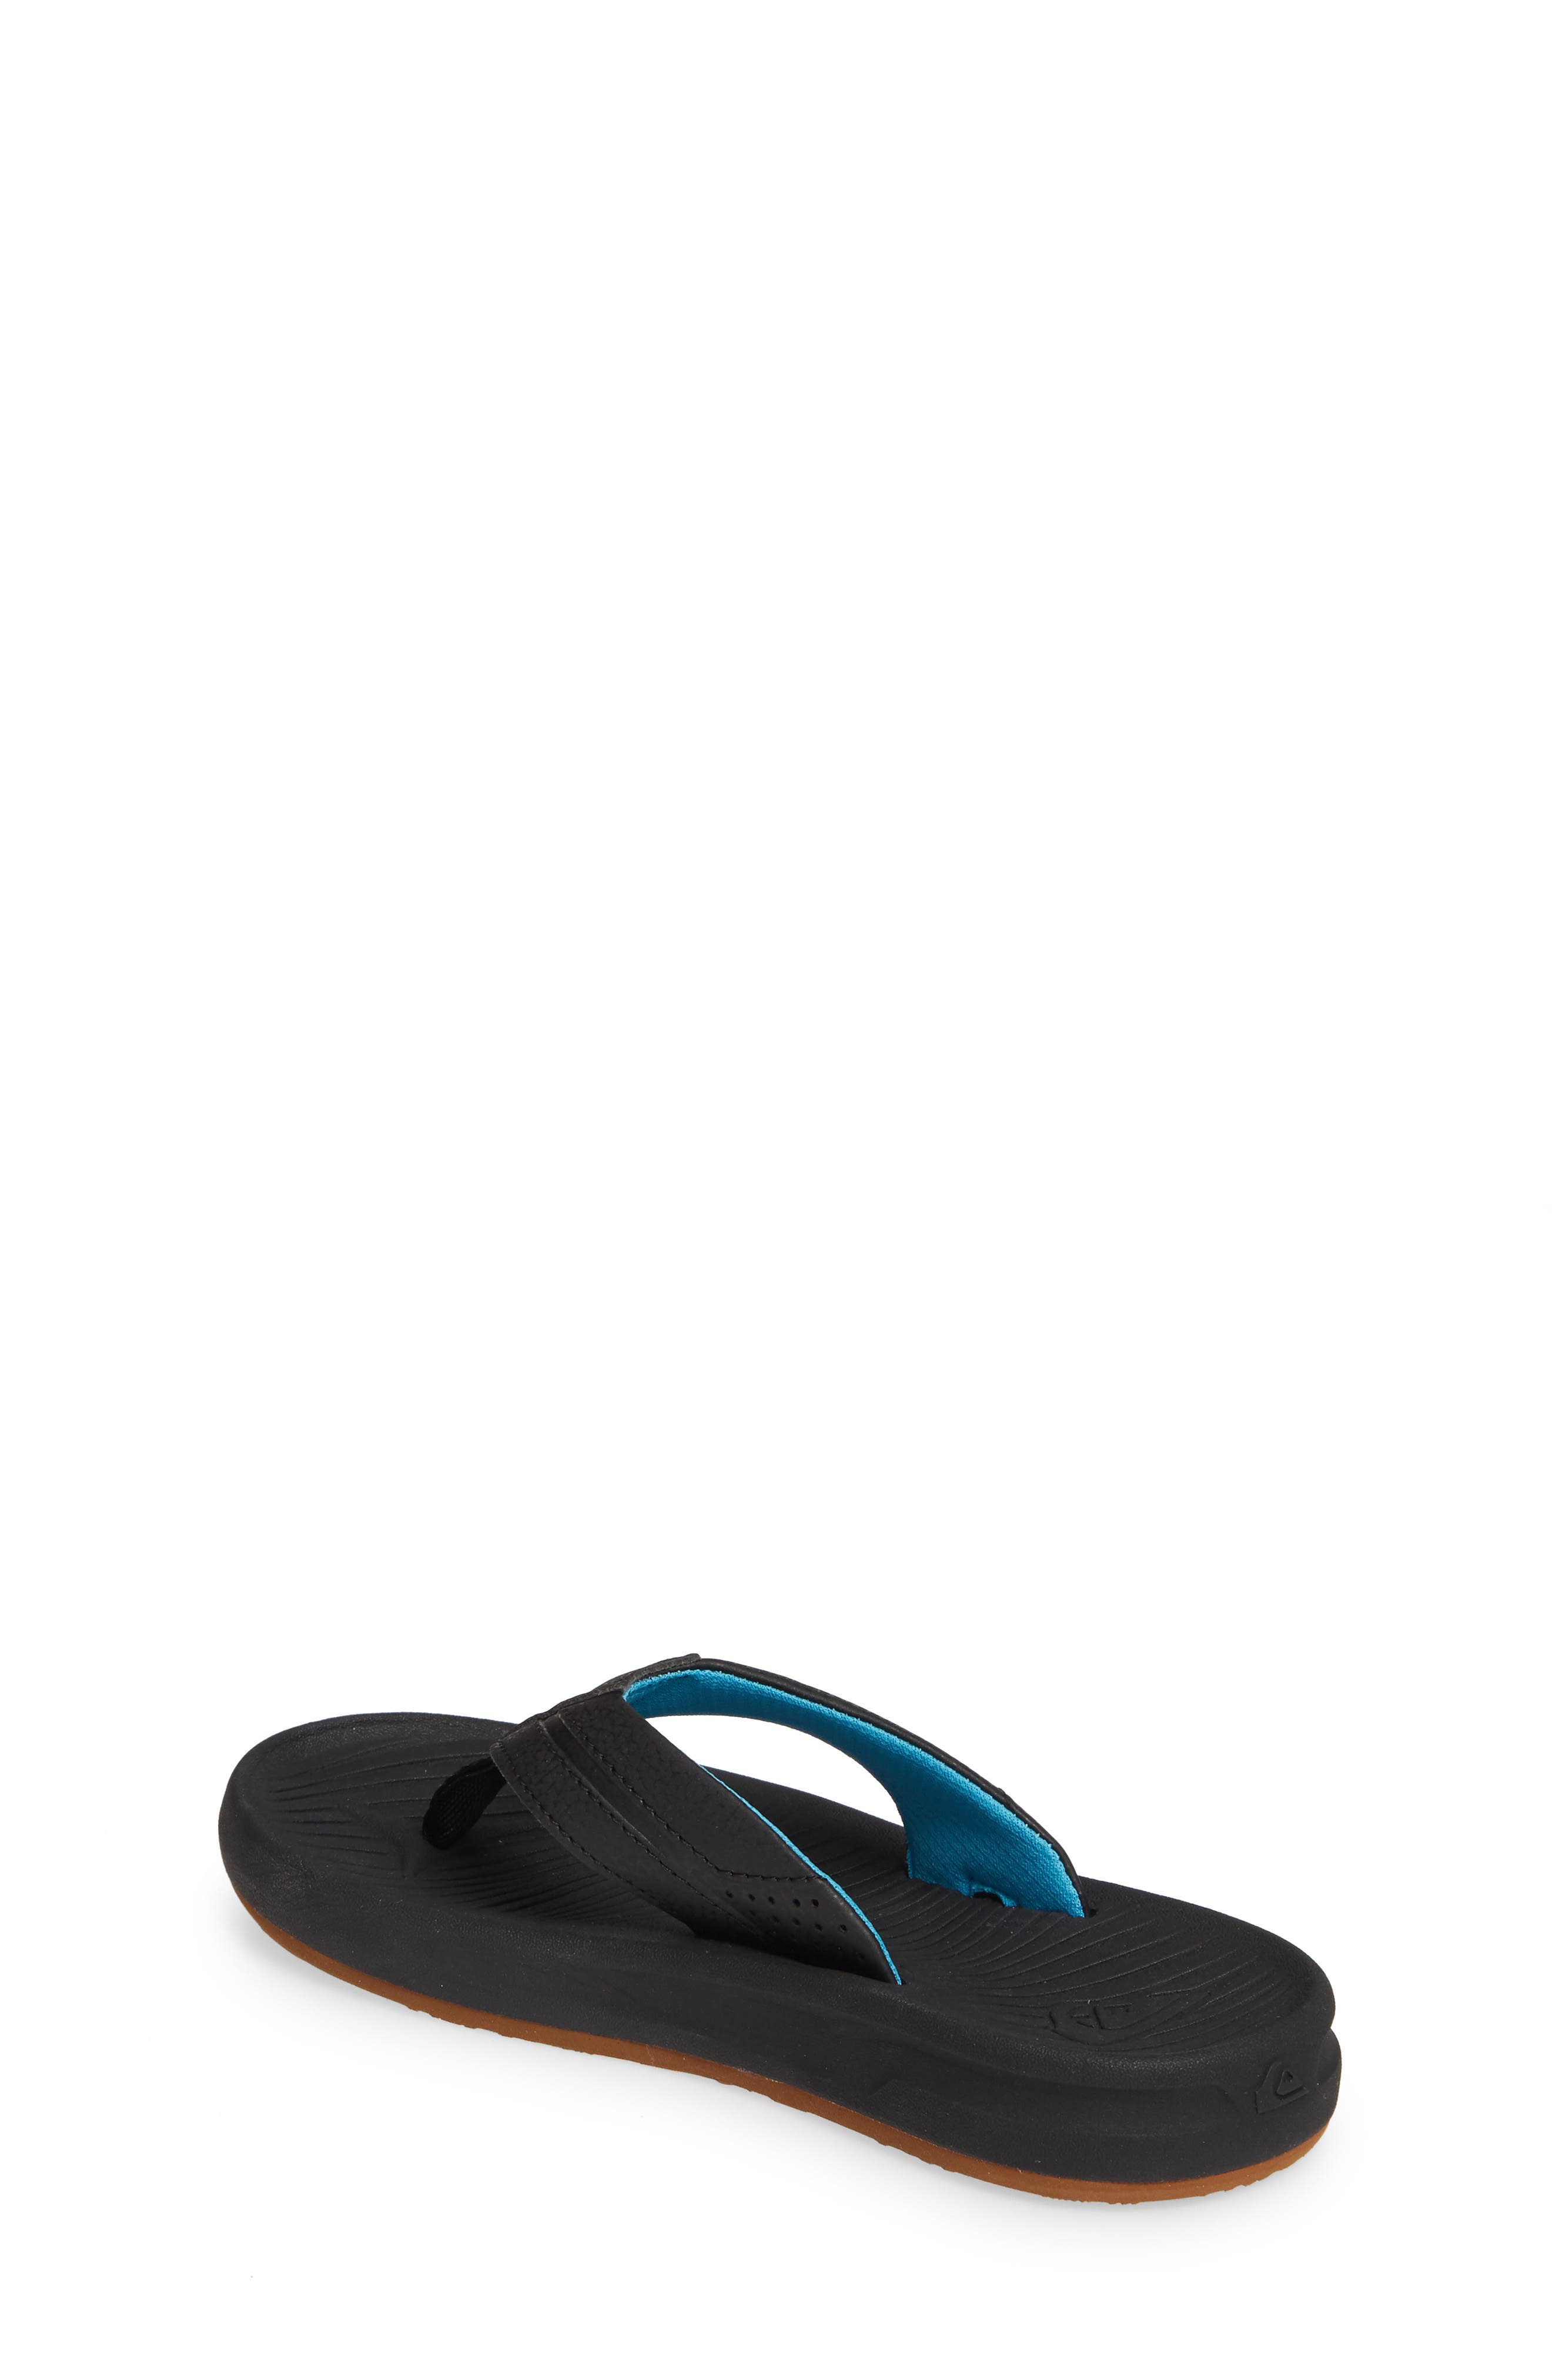 QUIKSILVER, Oasis Flip Flop, Alternate thumbnail 2, color, BLACK/ BLACK/ BROWN